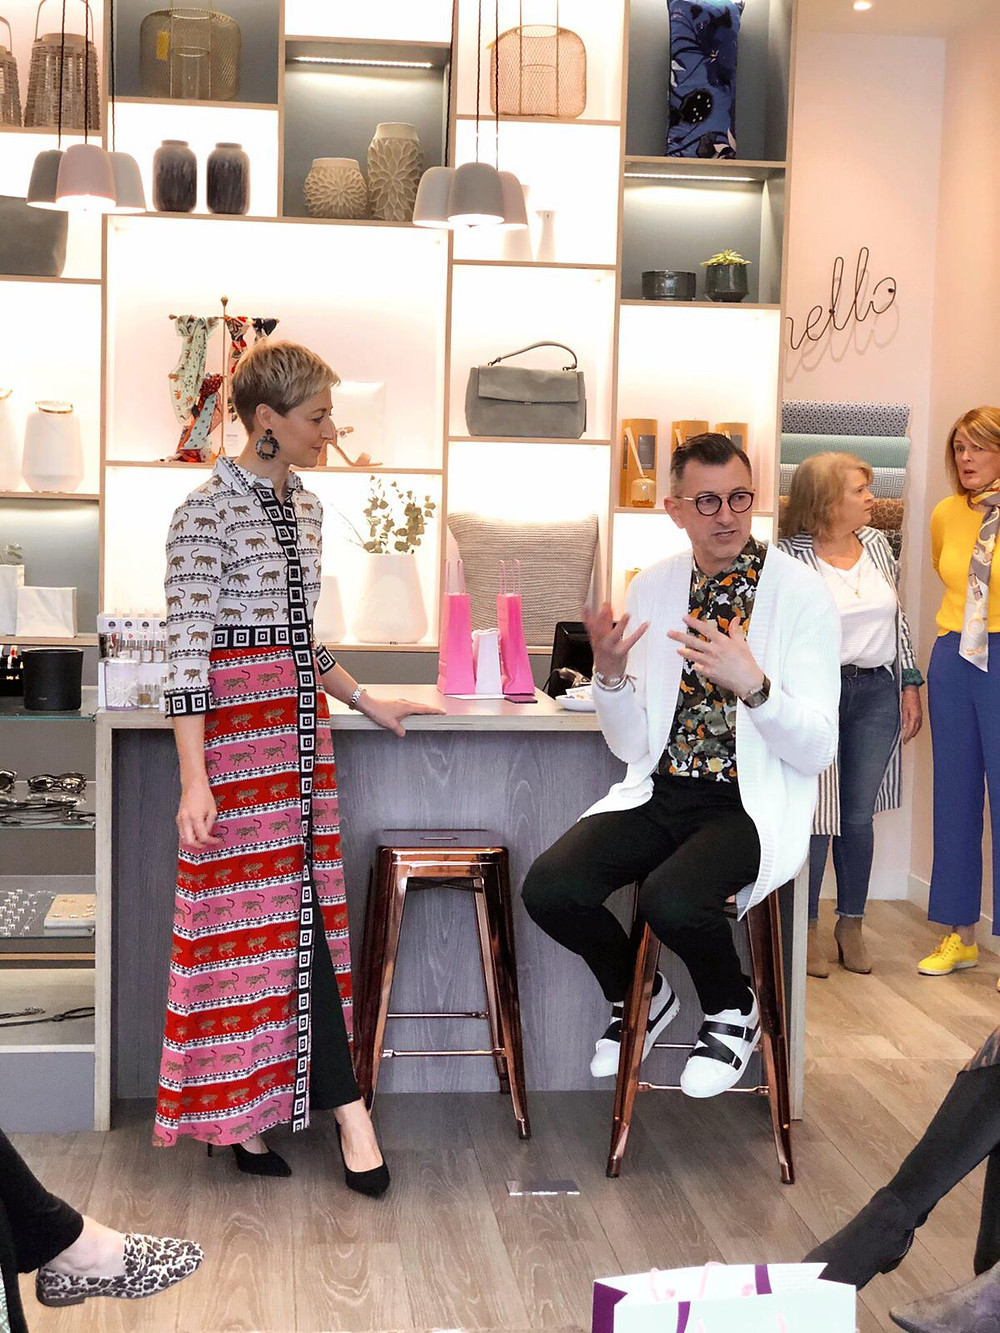 Helen and Olivier at Olivier's Lounge Spring-Summer 2019 fashion & lifestyle edit